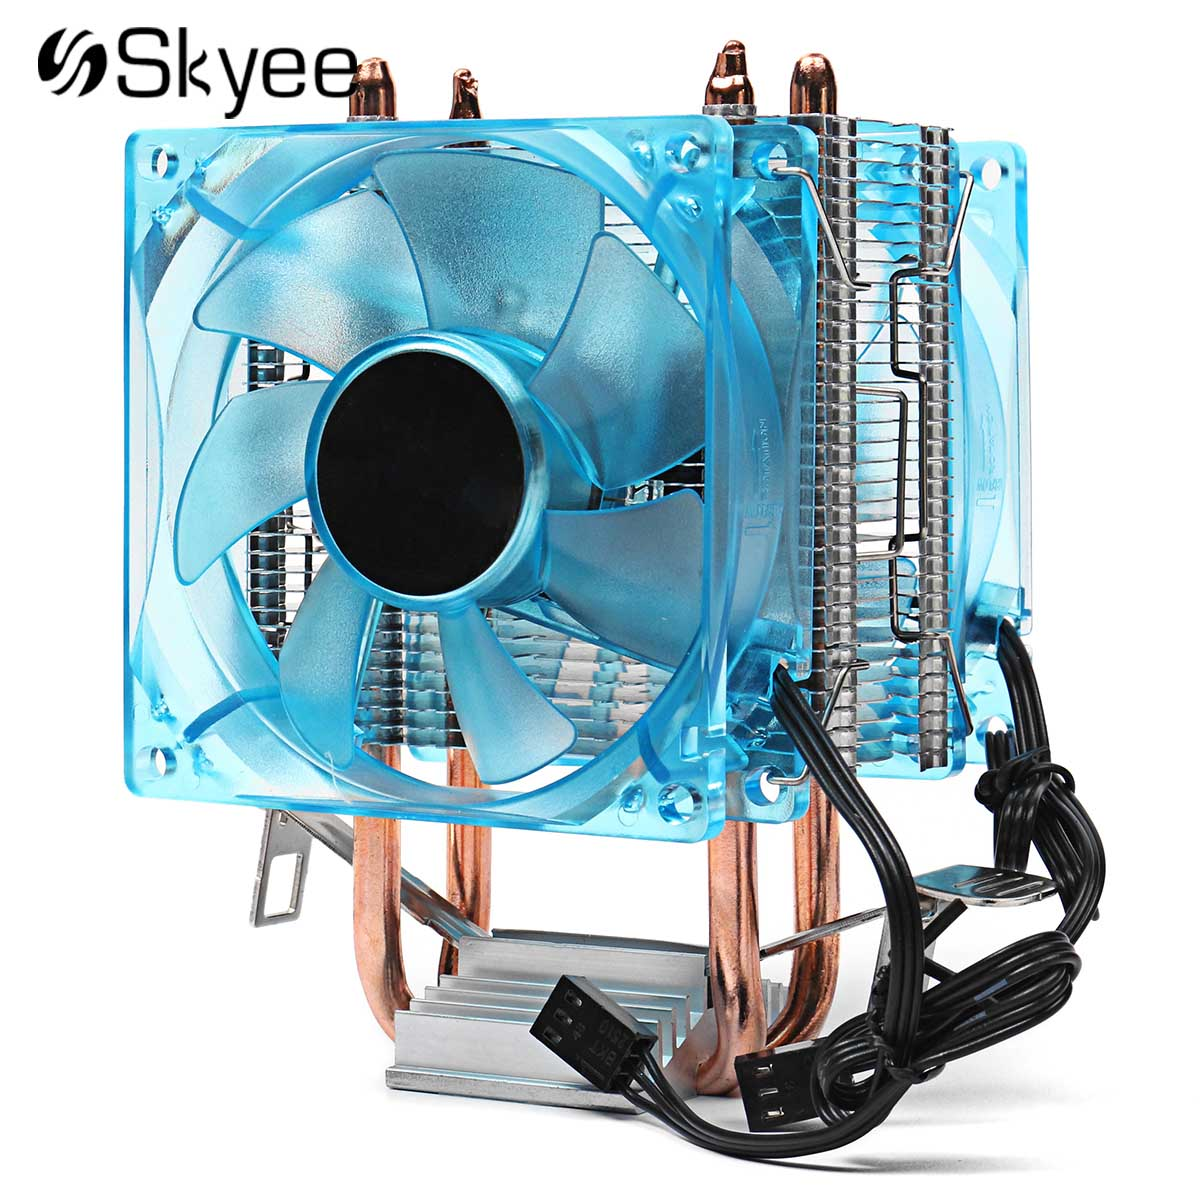 Aluminum CPU Cooling Fan Cooler Heatsink Fan 90mm Dual Copper Pipe LED CPU Cooling Fan for AMD FM1 AM2+ AM3+ Intel 775 1155 1156 best quality pc cpu cooler cooling fan heatsink for intel lga775 1155 amd am2 am3